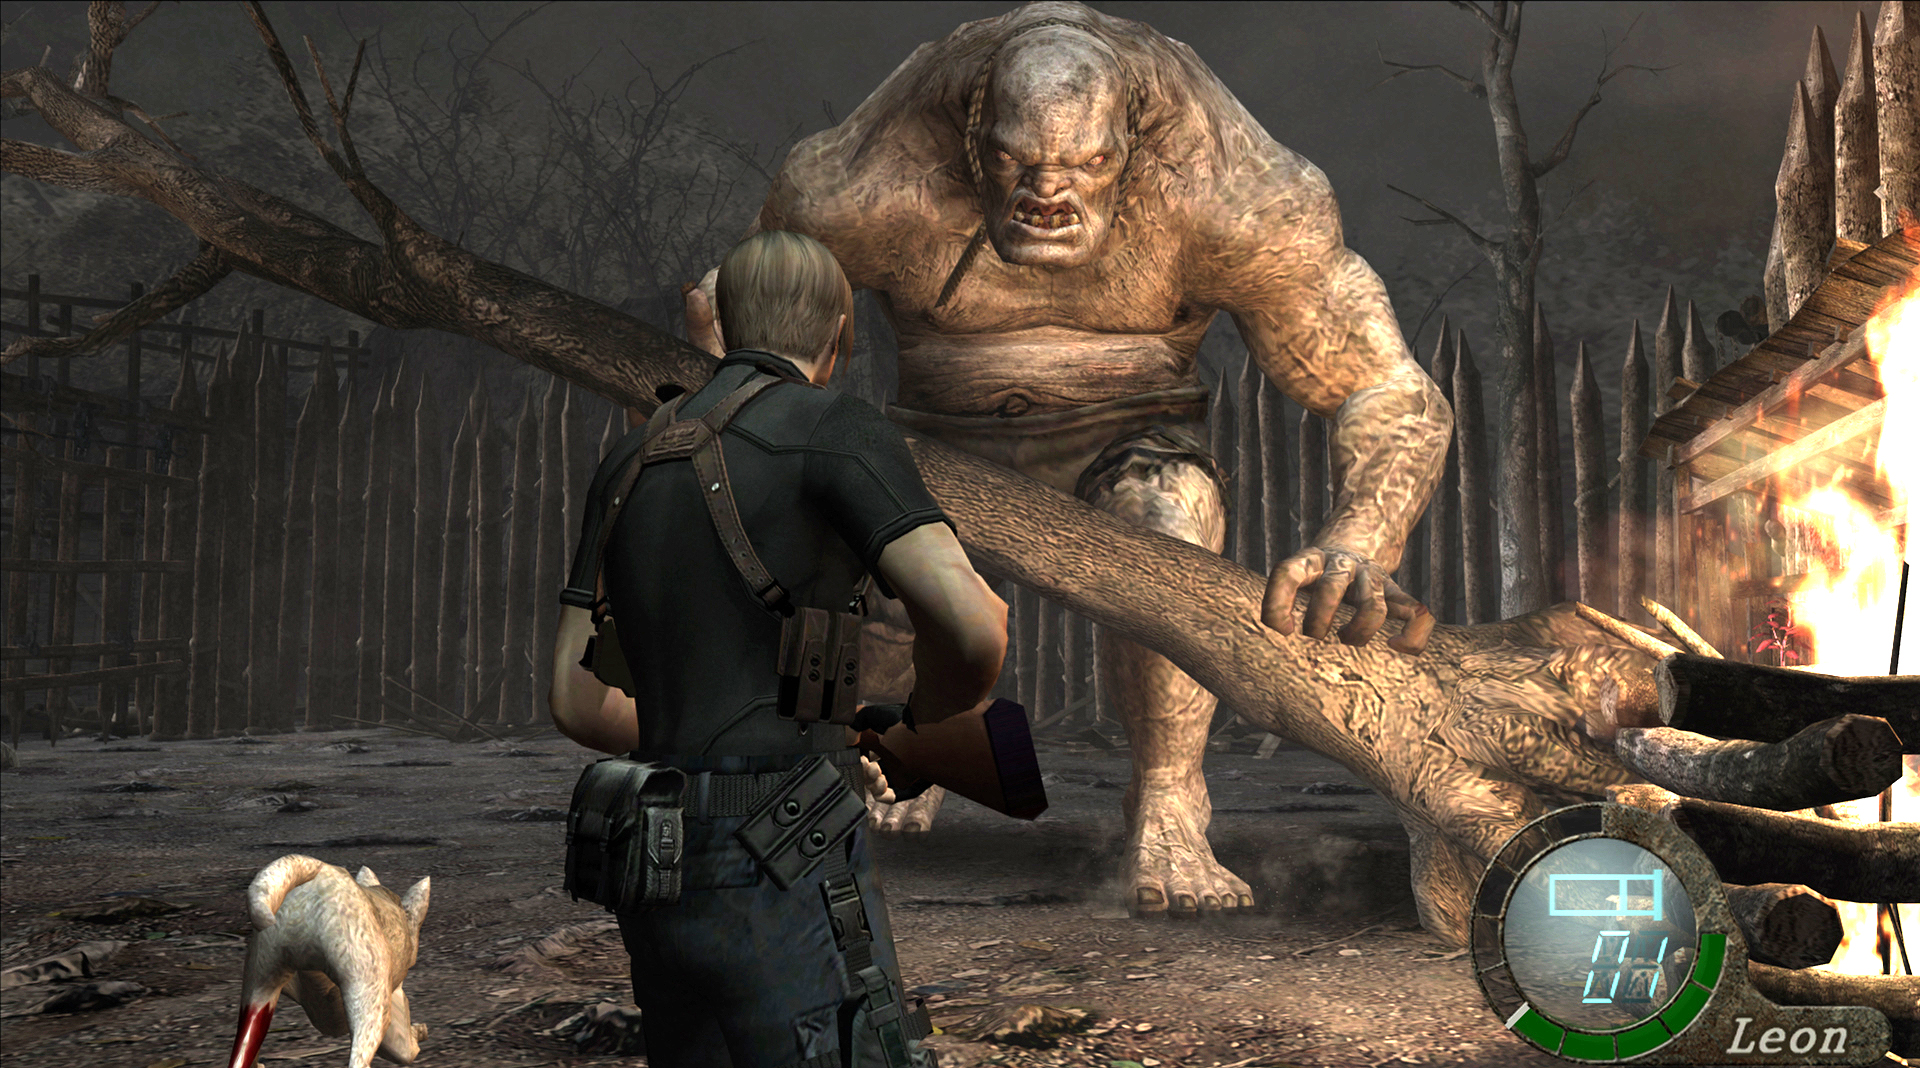 resident evil 4 / biohazard 4 - Ultimate HD Edition [PC PS4 XONE] Ss_967184a307f57c18fbe140c23eaf137ba26b5282